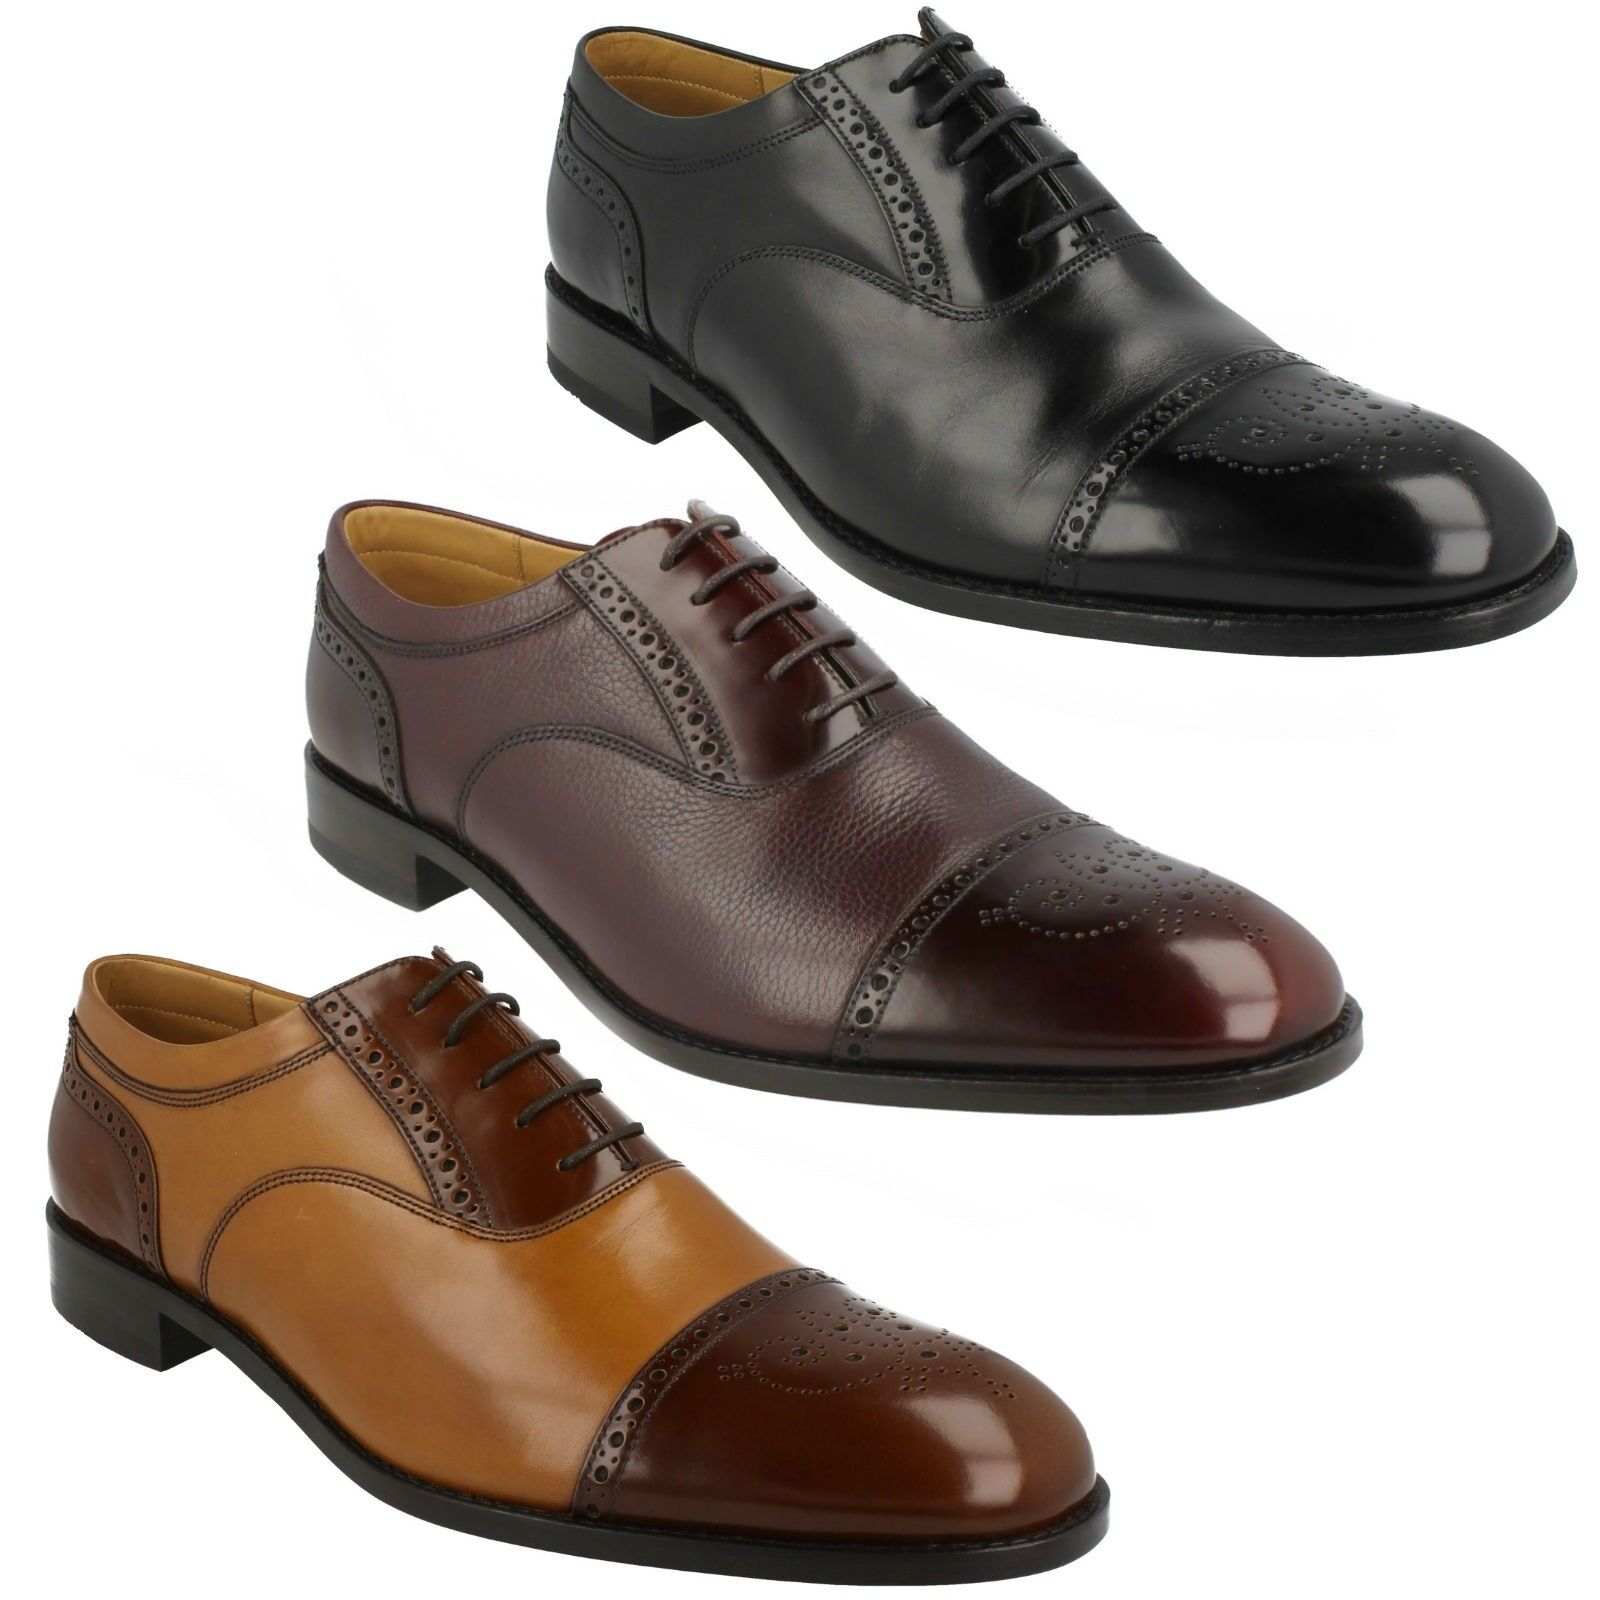 LOAKE WOODSTOCK MENS CALF POLISHED LEATHER WIDE LACE UP OXFORD SEMI BROGUE schuhe  | Exquisite Verarbeitung